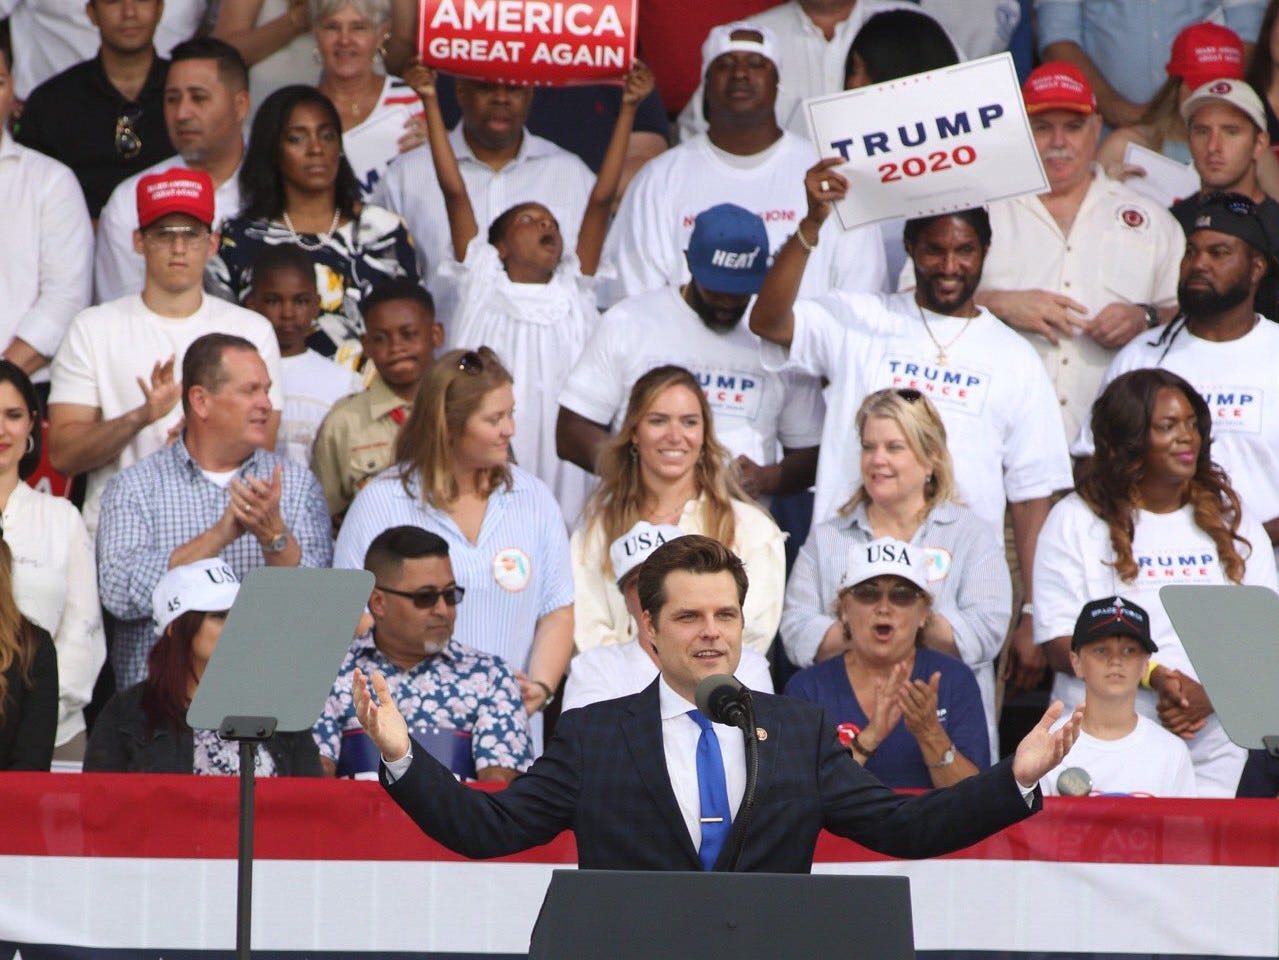 Rep. Matt Gaetz talks to the crowd at the Donald Trump re-election campaign rally at Panama City Beach, Fla., on Wednesday, May 8, 2019.